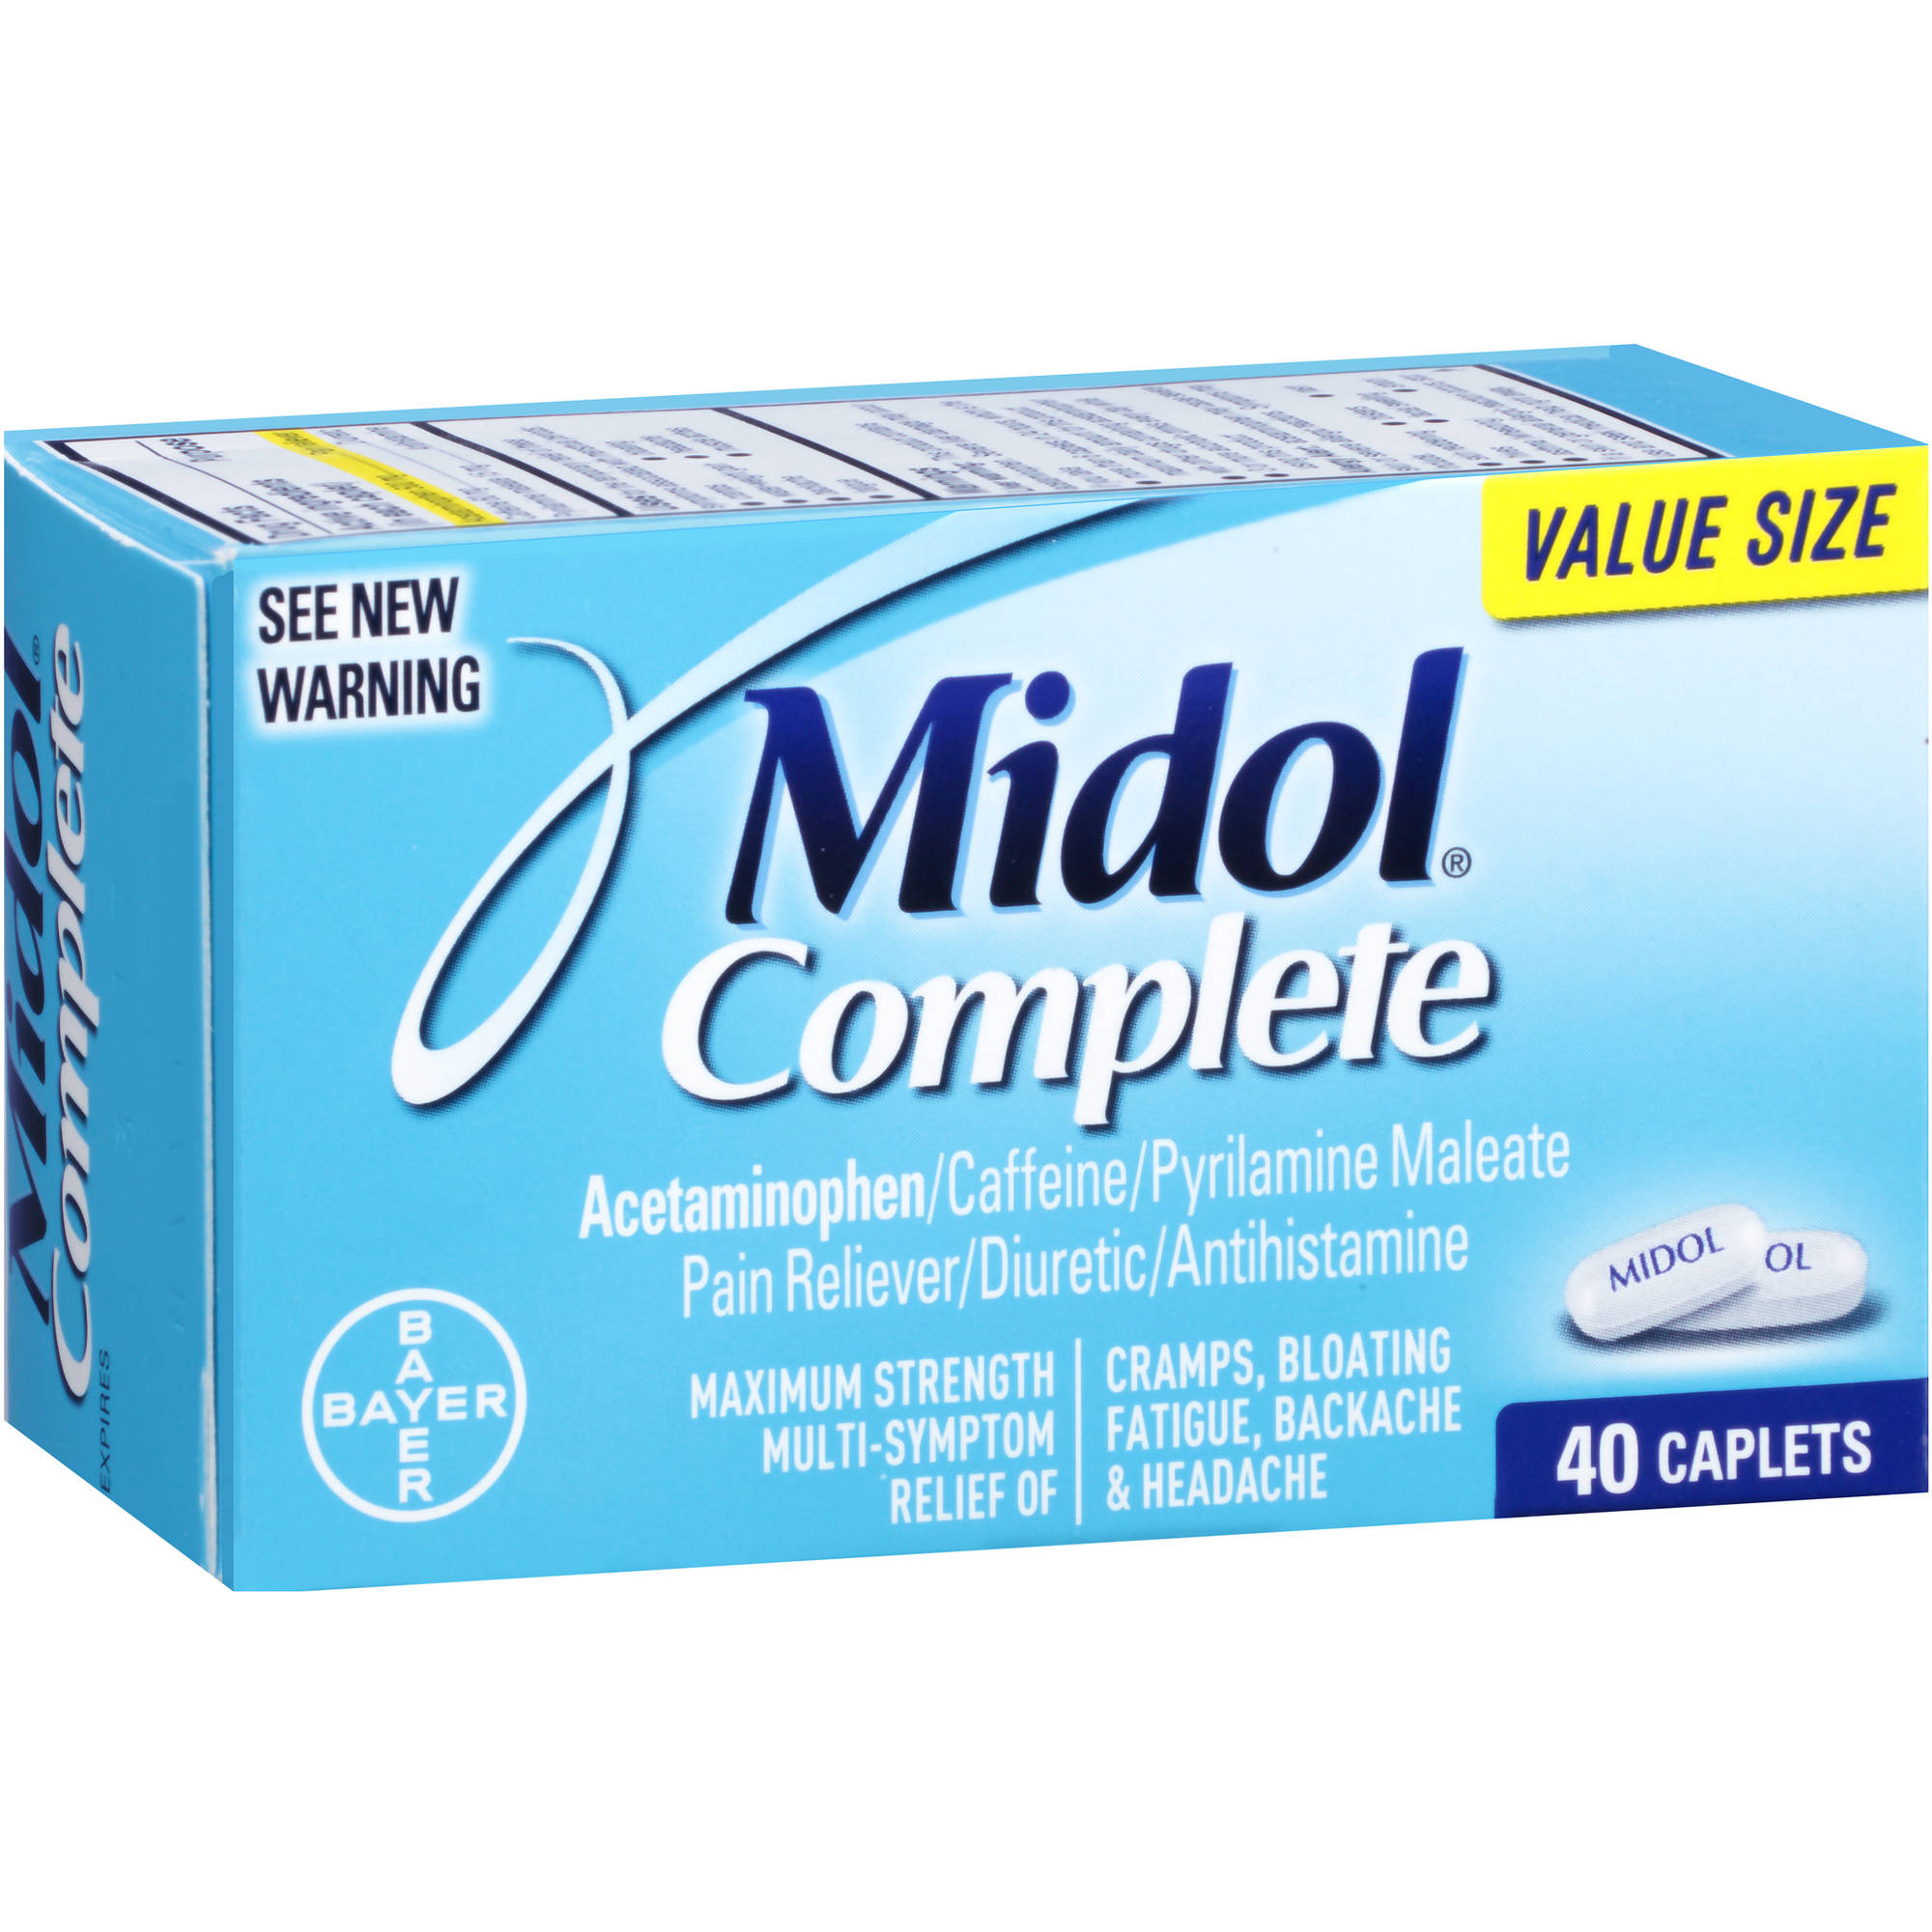 Midol Complete Maximum Strength Pain Reliever, 40 count